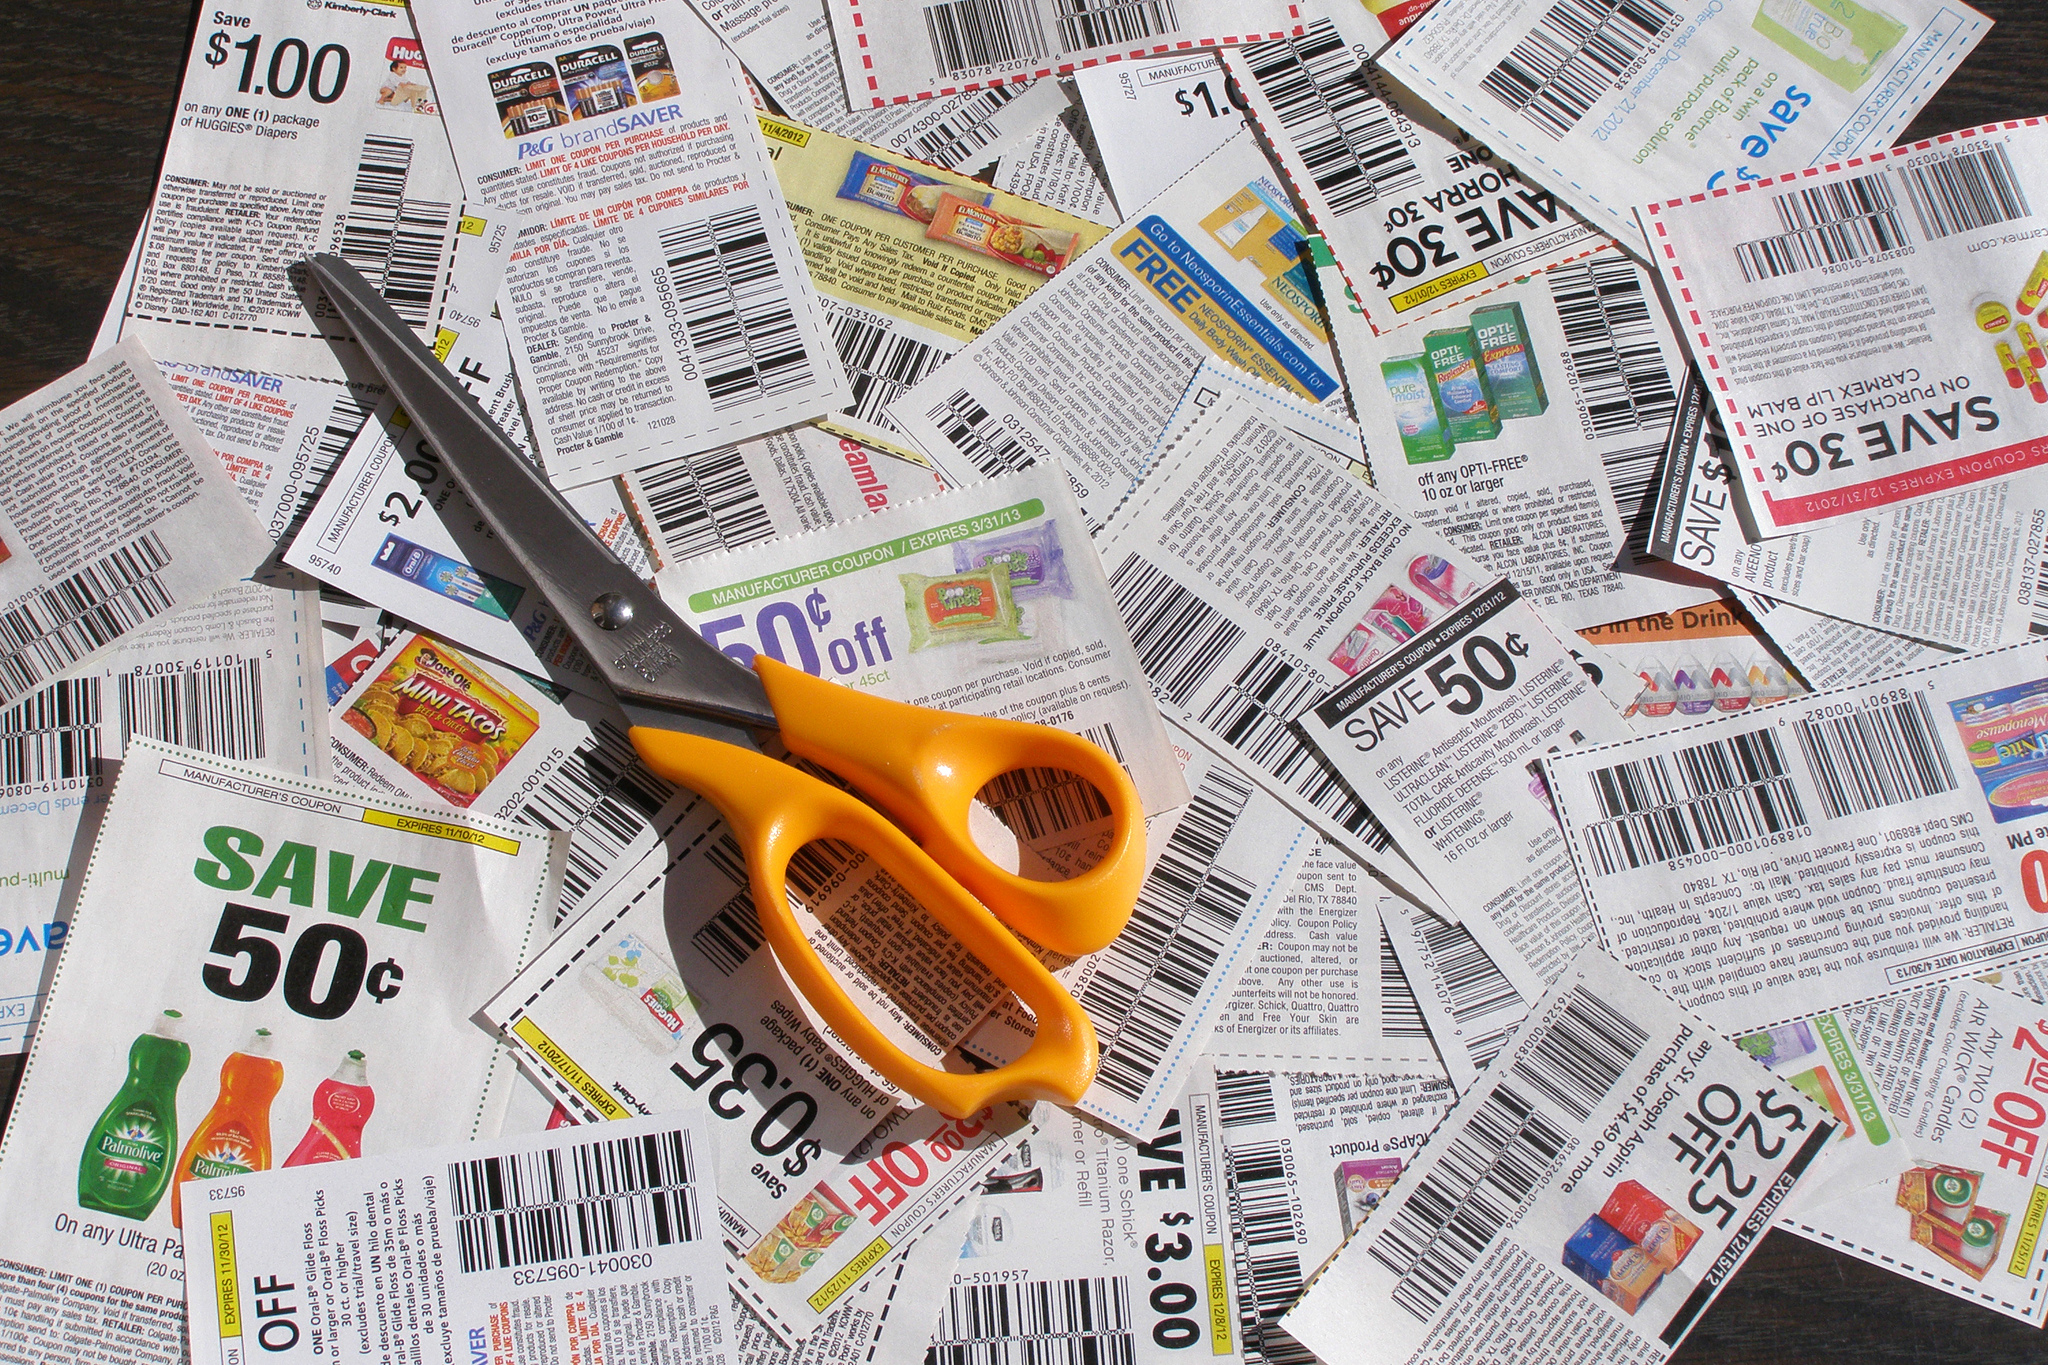 Clipping coupons with scissors